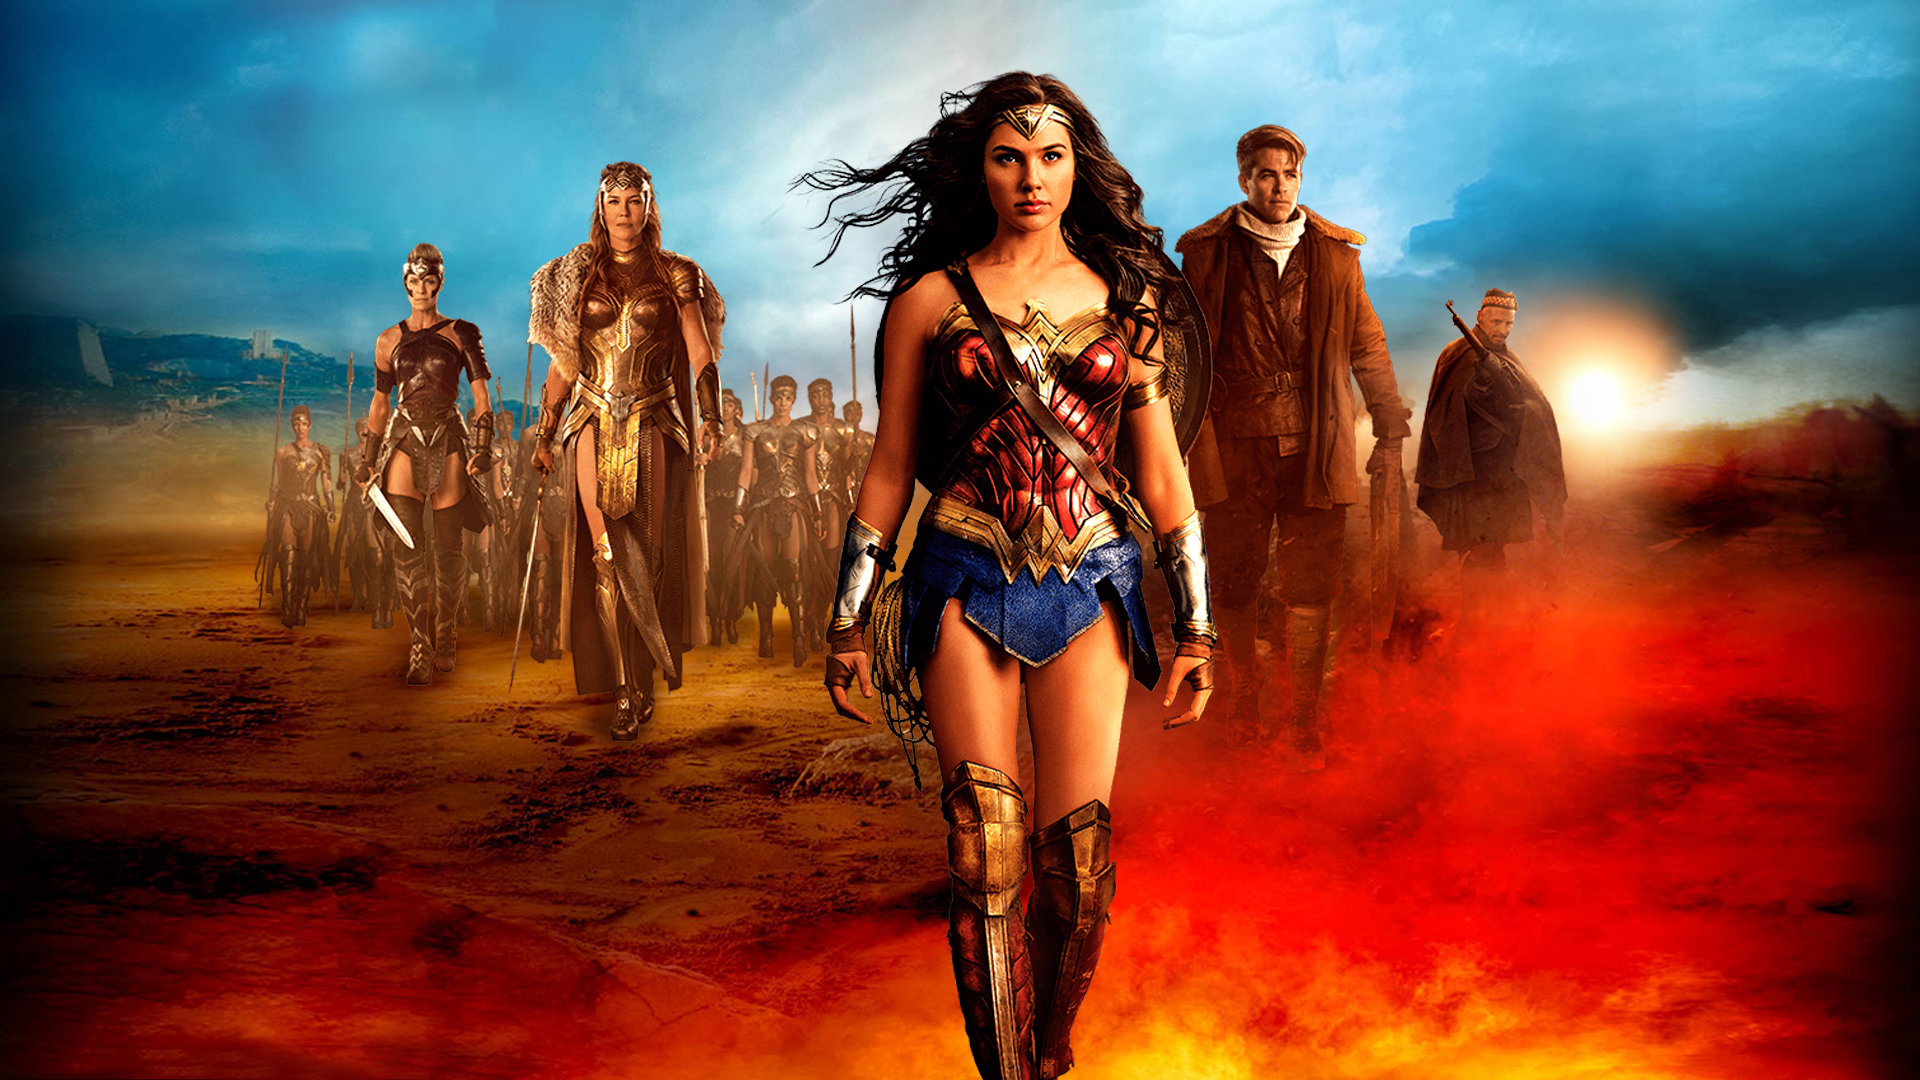 Richard Donner's heir-apparent… - More than the first major superhero film featuring a heroine, Patty Jenkins and Gal Gadot craft a film that could become the 21st century's Superman: The Movie.